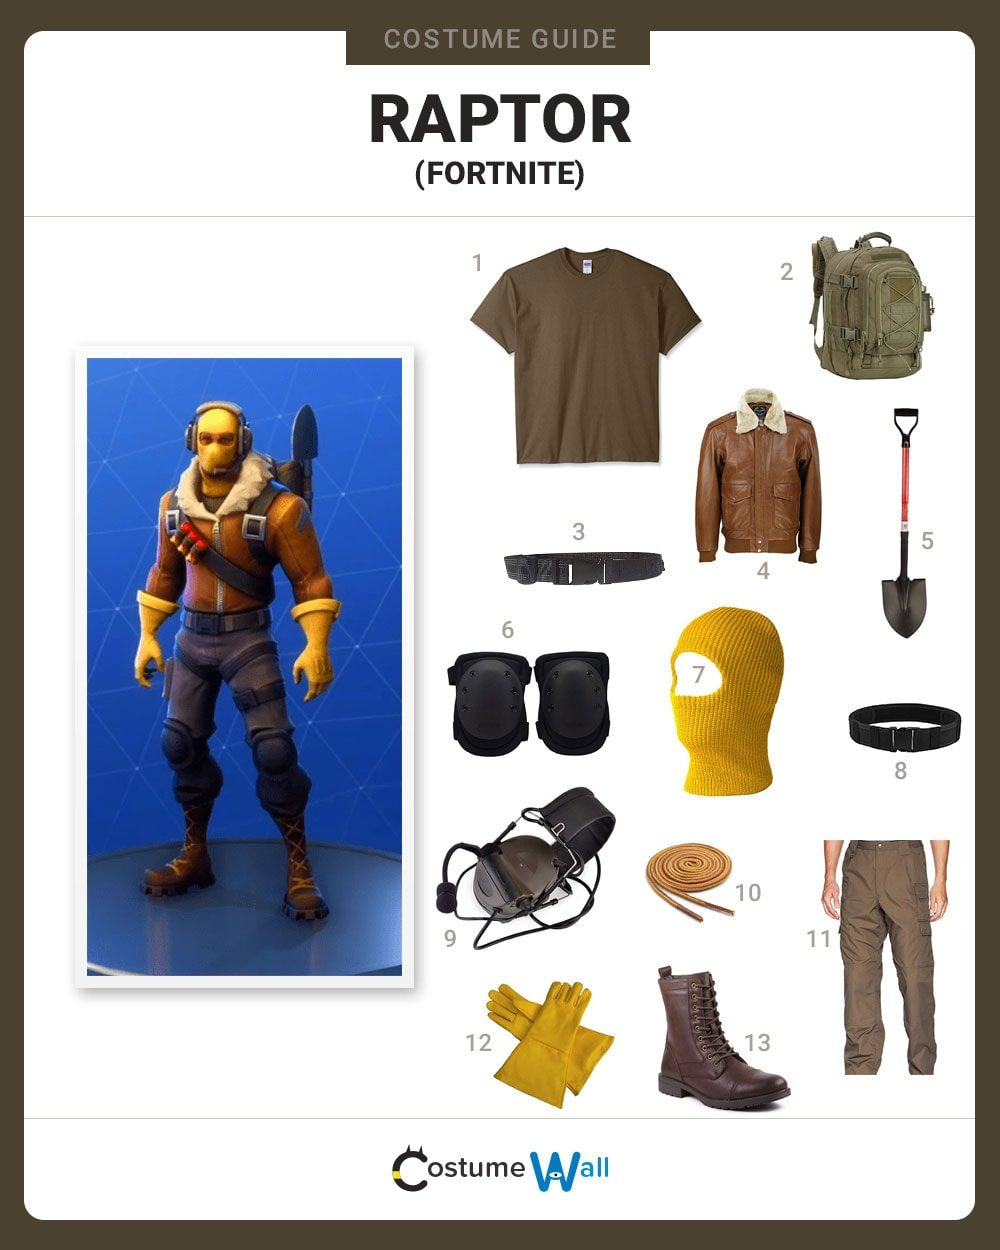 Dress Like Raptor From Fortnite Costume Halloween And Cosplay Guides